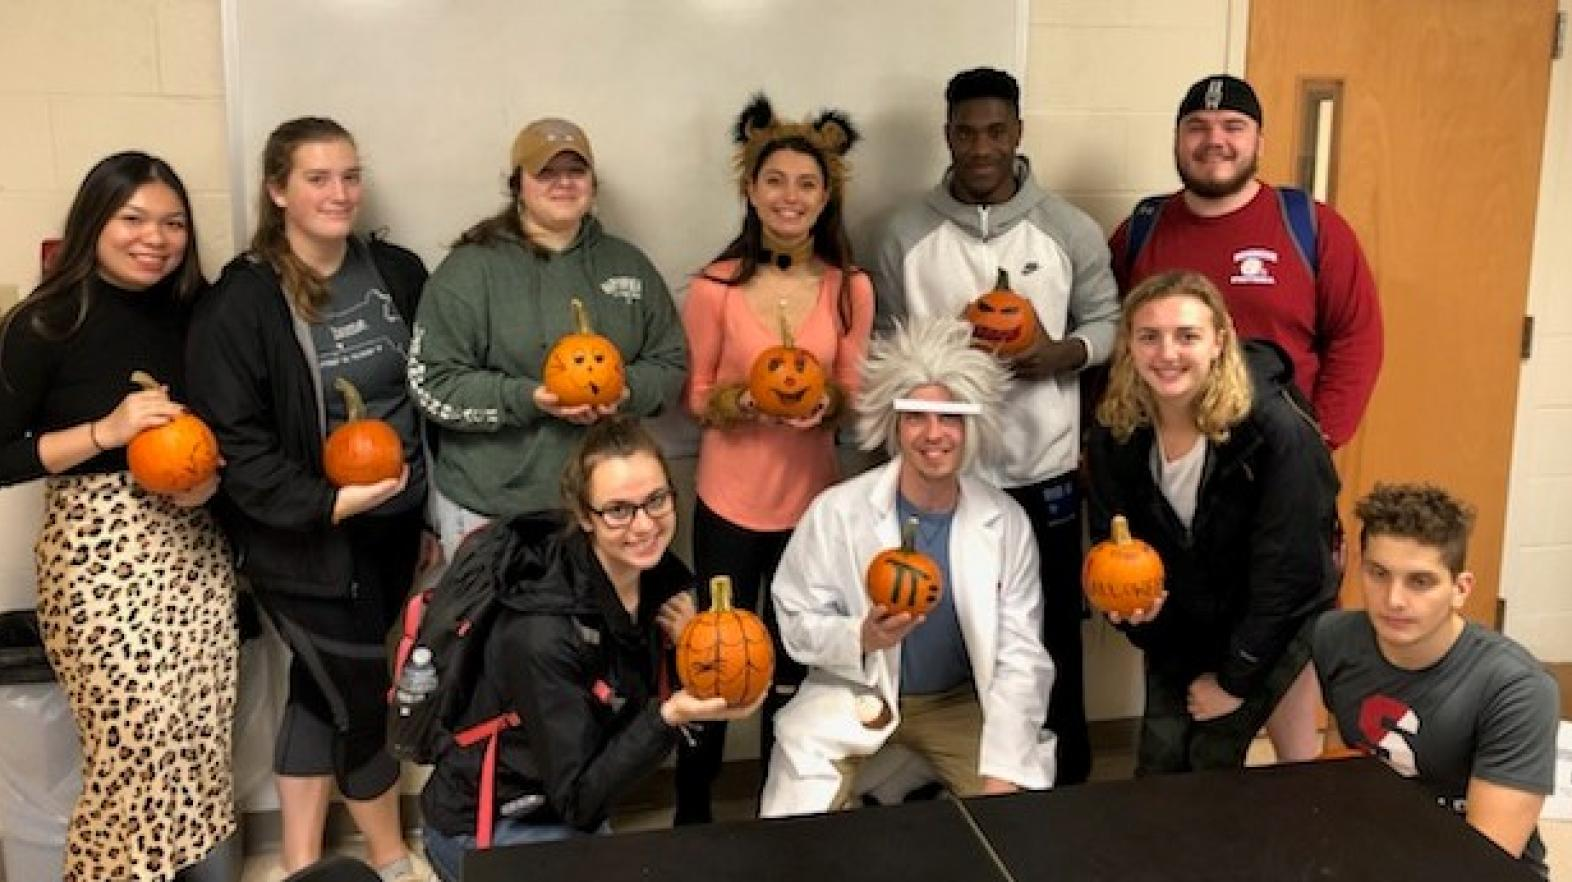 Students in the Department of Mathematics, Physics, and Computer Science participate in a Pumpkin contest at Halloween